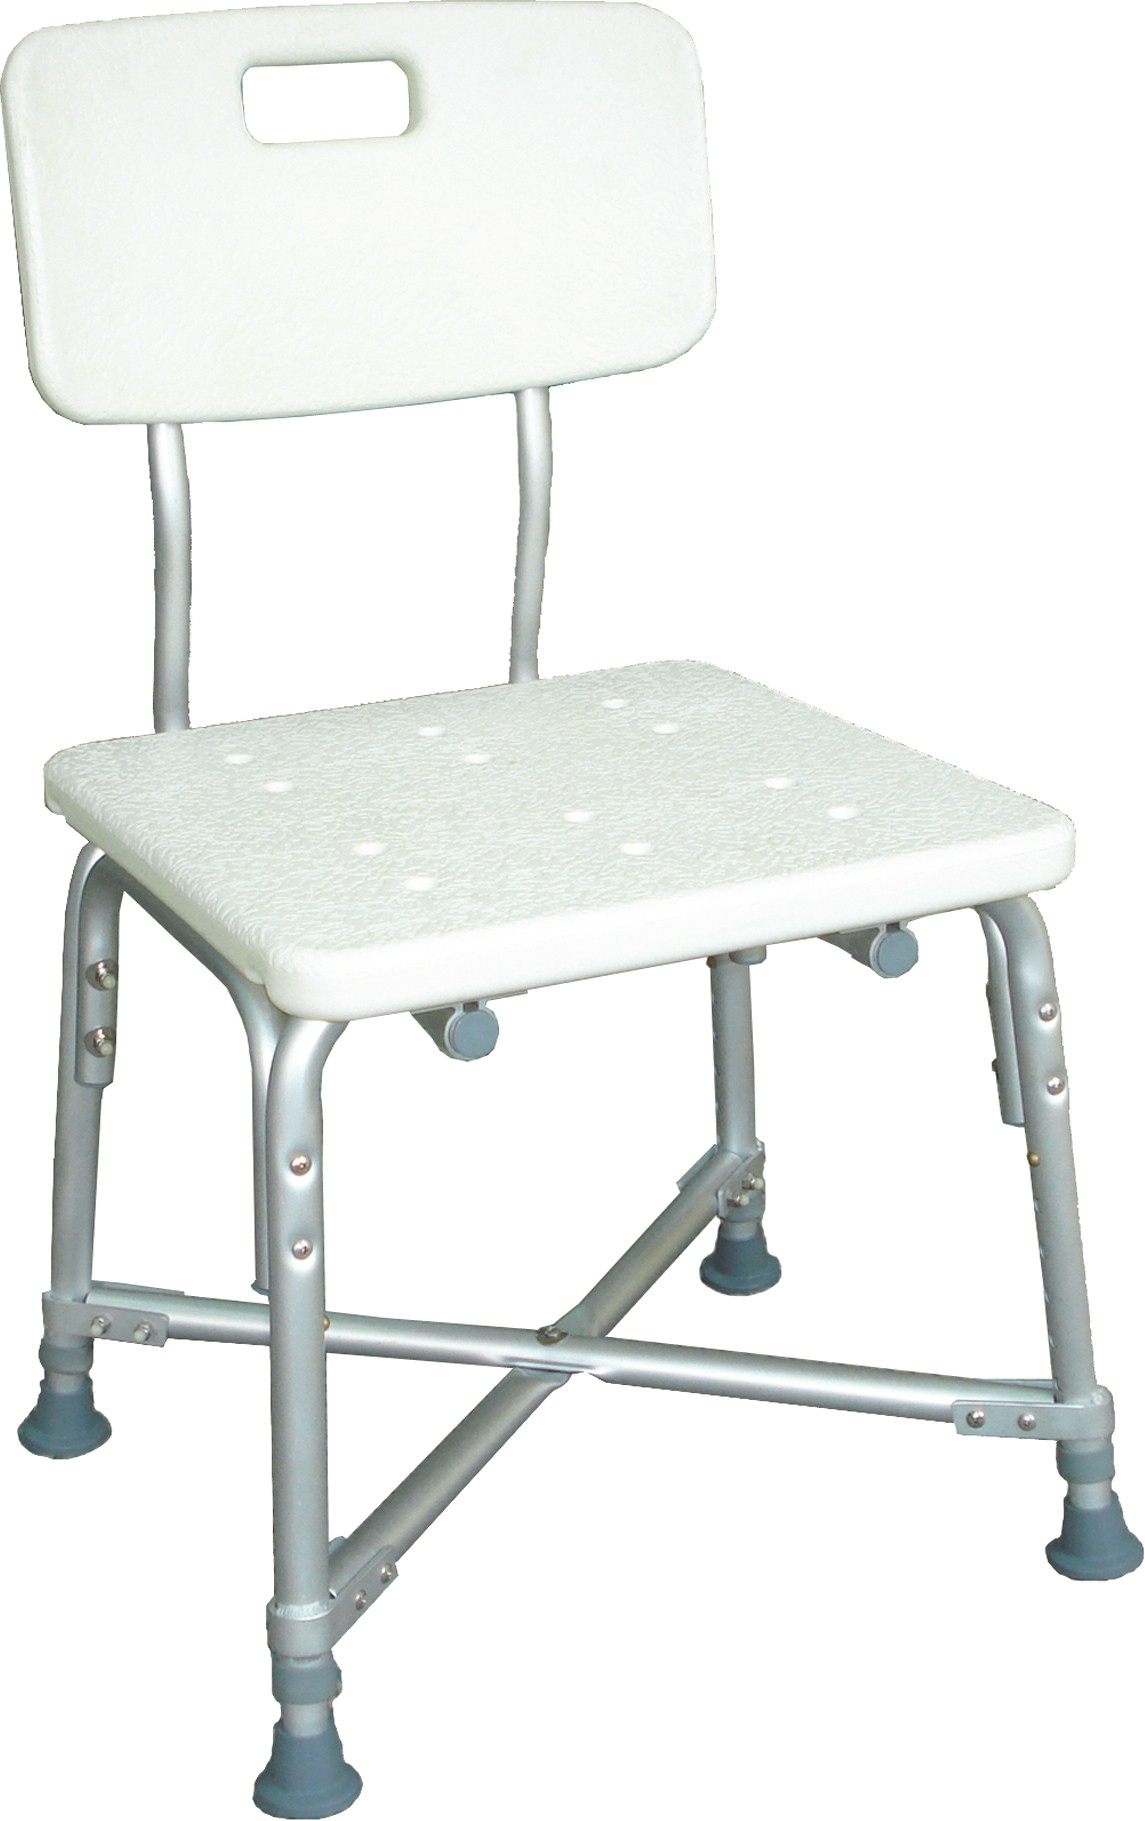 Bariatric Shower Chair Bariatric Equipment Archives Discount Medical Supply